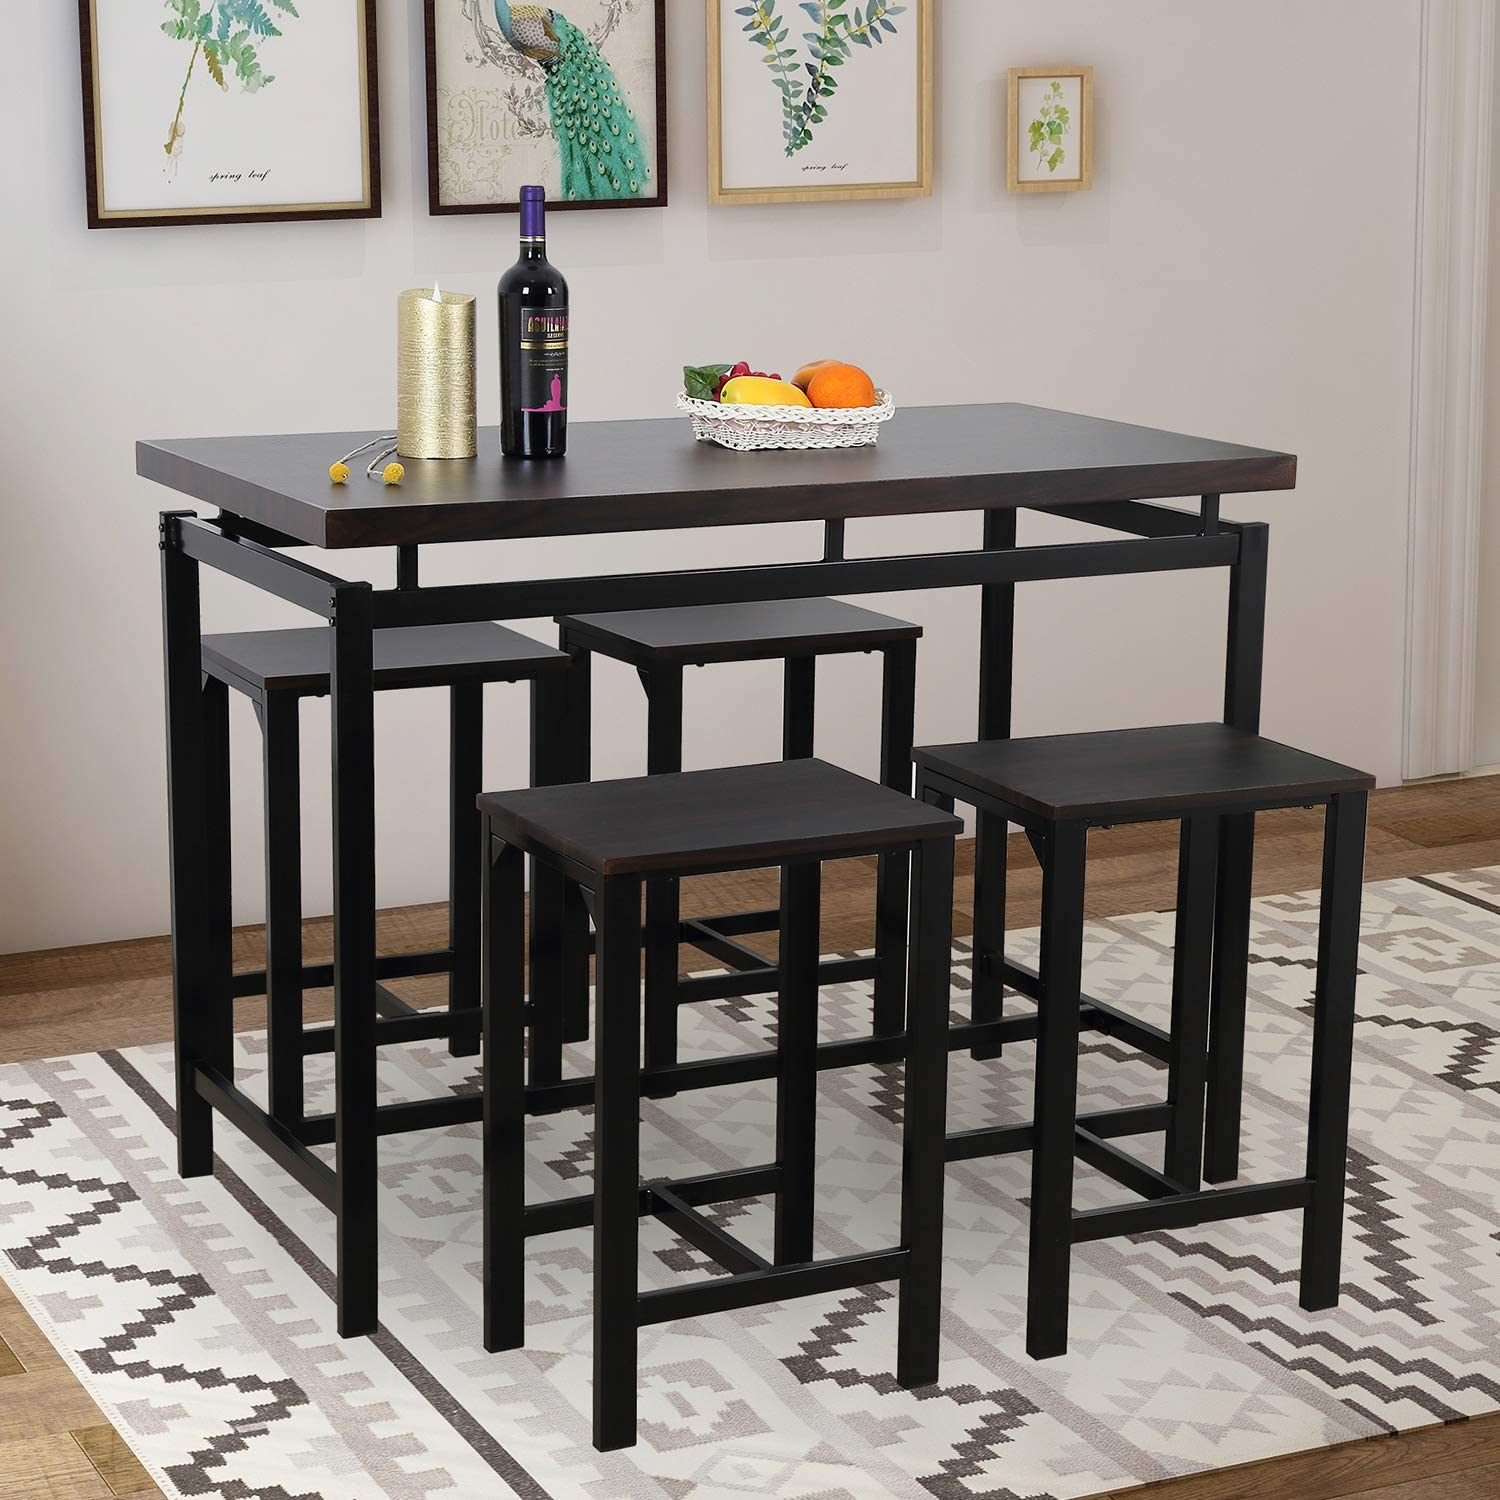 Dining Table Set, Rockjame 5 Piece Counter Height Pub Table Set with 4 Chairs for The Bar, Breakfast Nook, Kitchen Room, Dining Room and Living Room Espresso